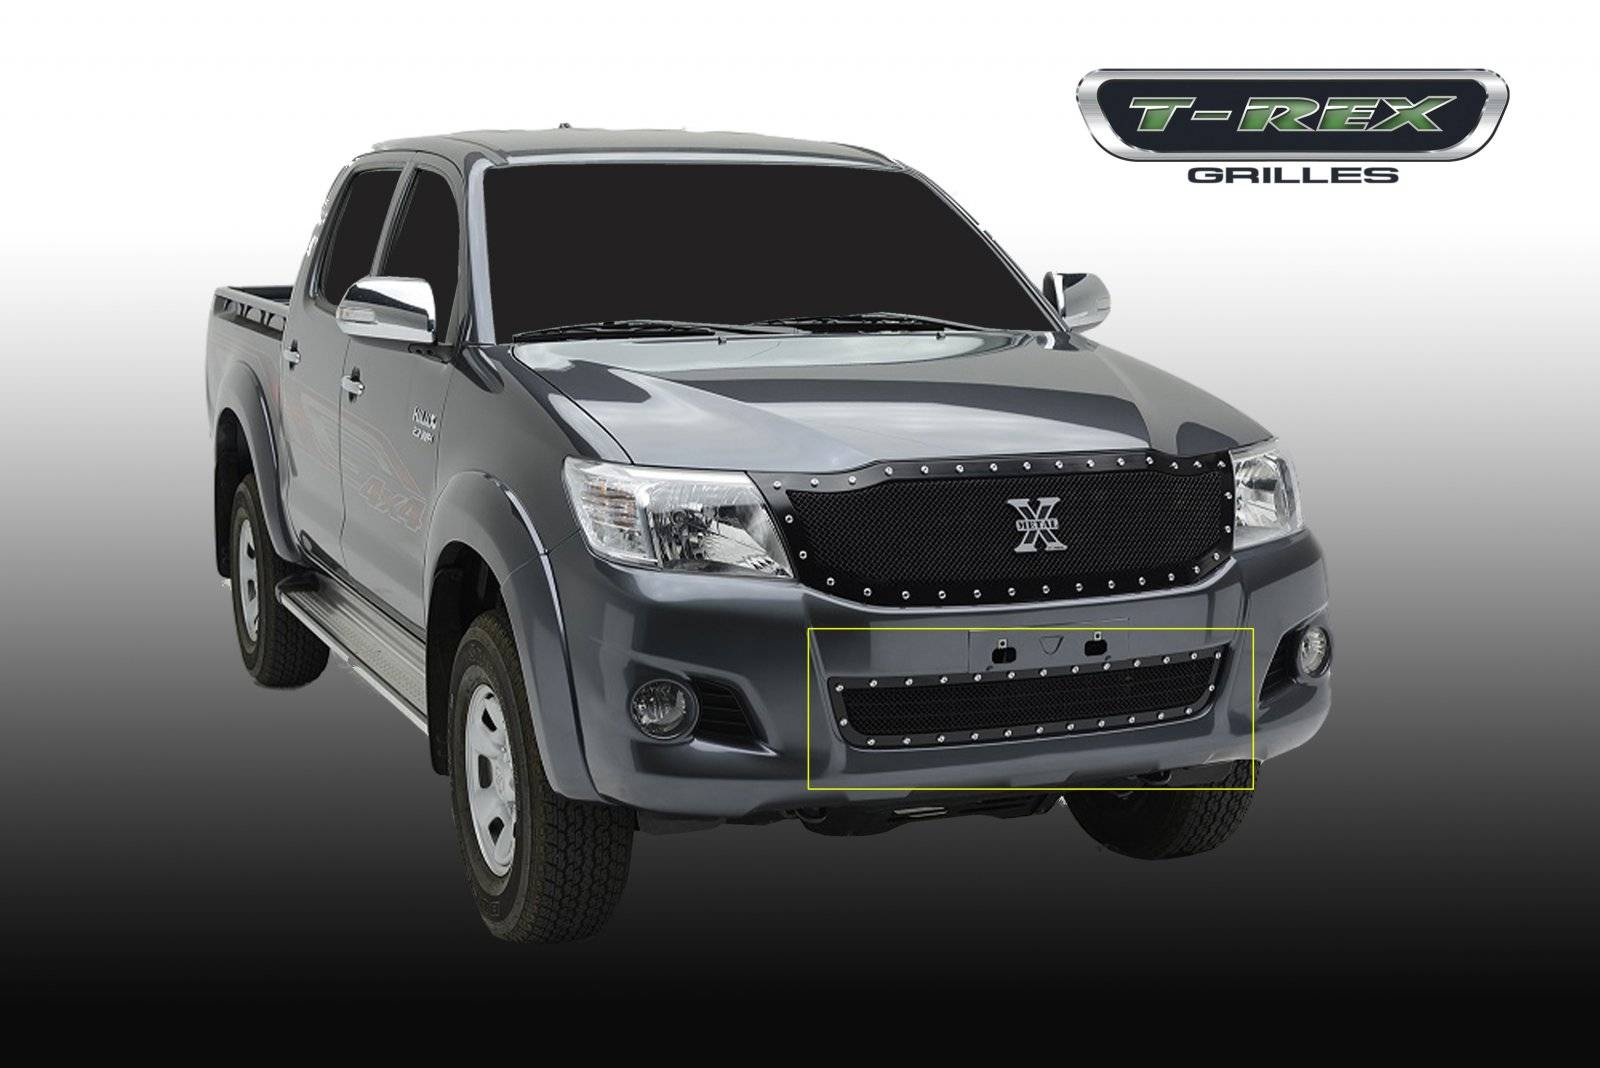 Toyota Hilux X-METAL, Formed Mesh Grille, Bumper, Replacement, 1 Pc, Black Powdercoated Mild Steel - Pt # 6729091